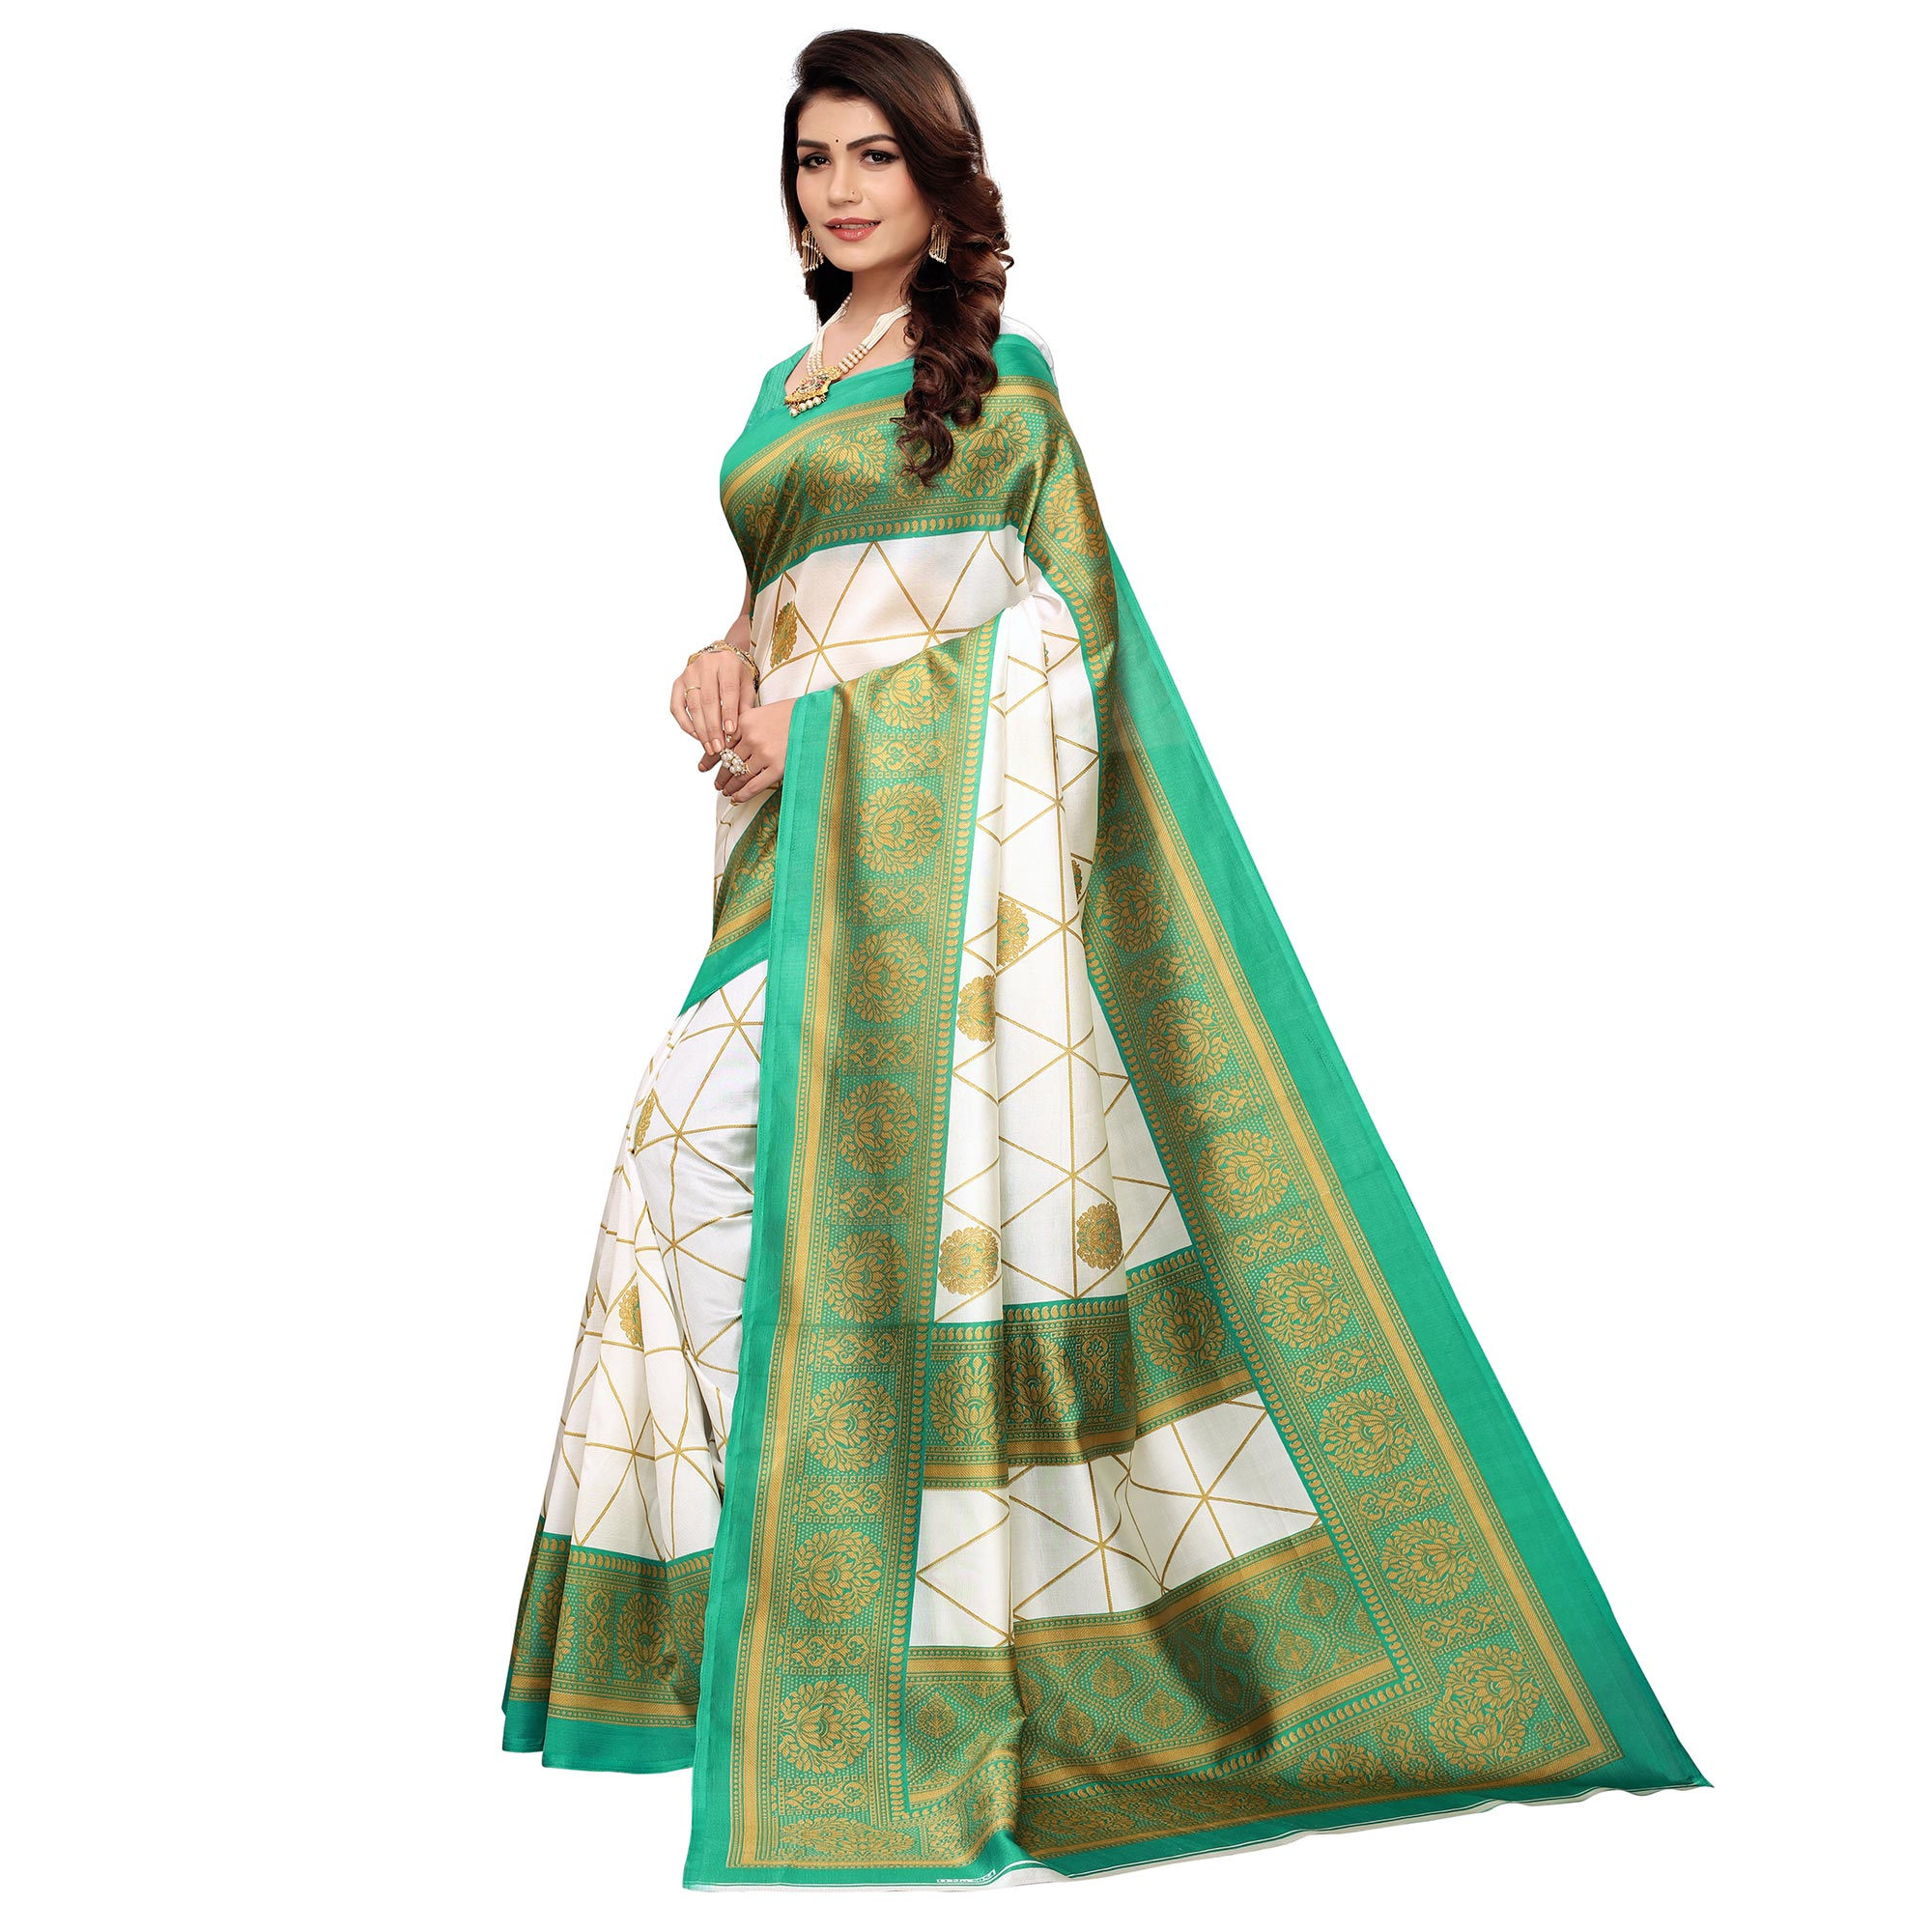 Unique White-Turquoise Green Colored Festive Wear Printed Mysore Art Silk Saree